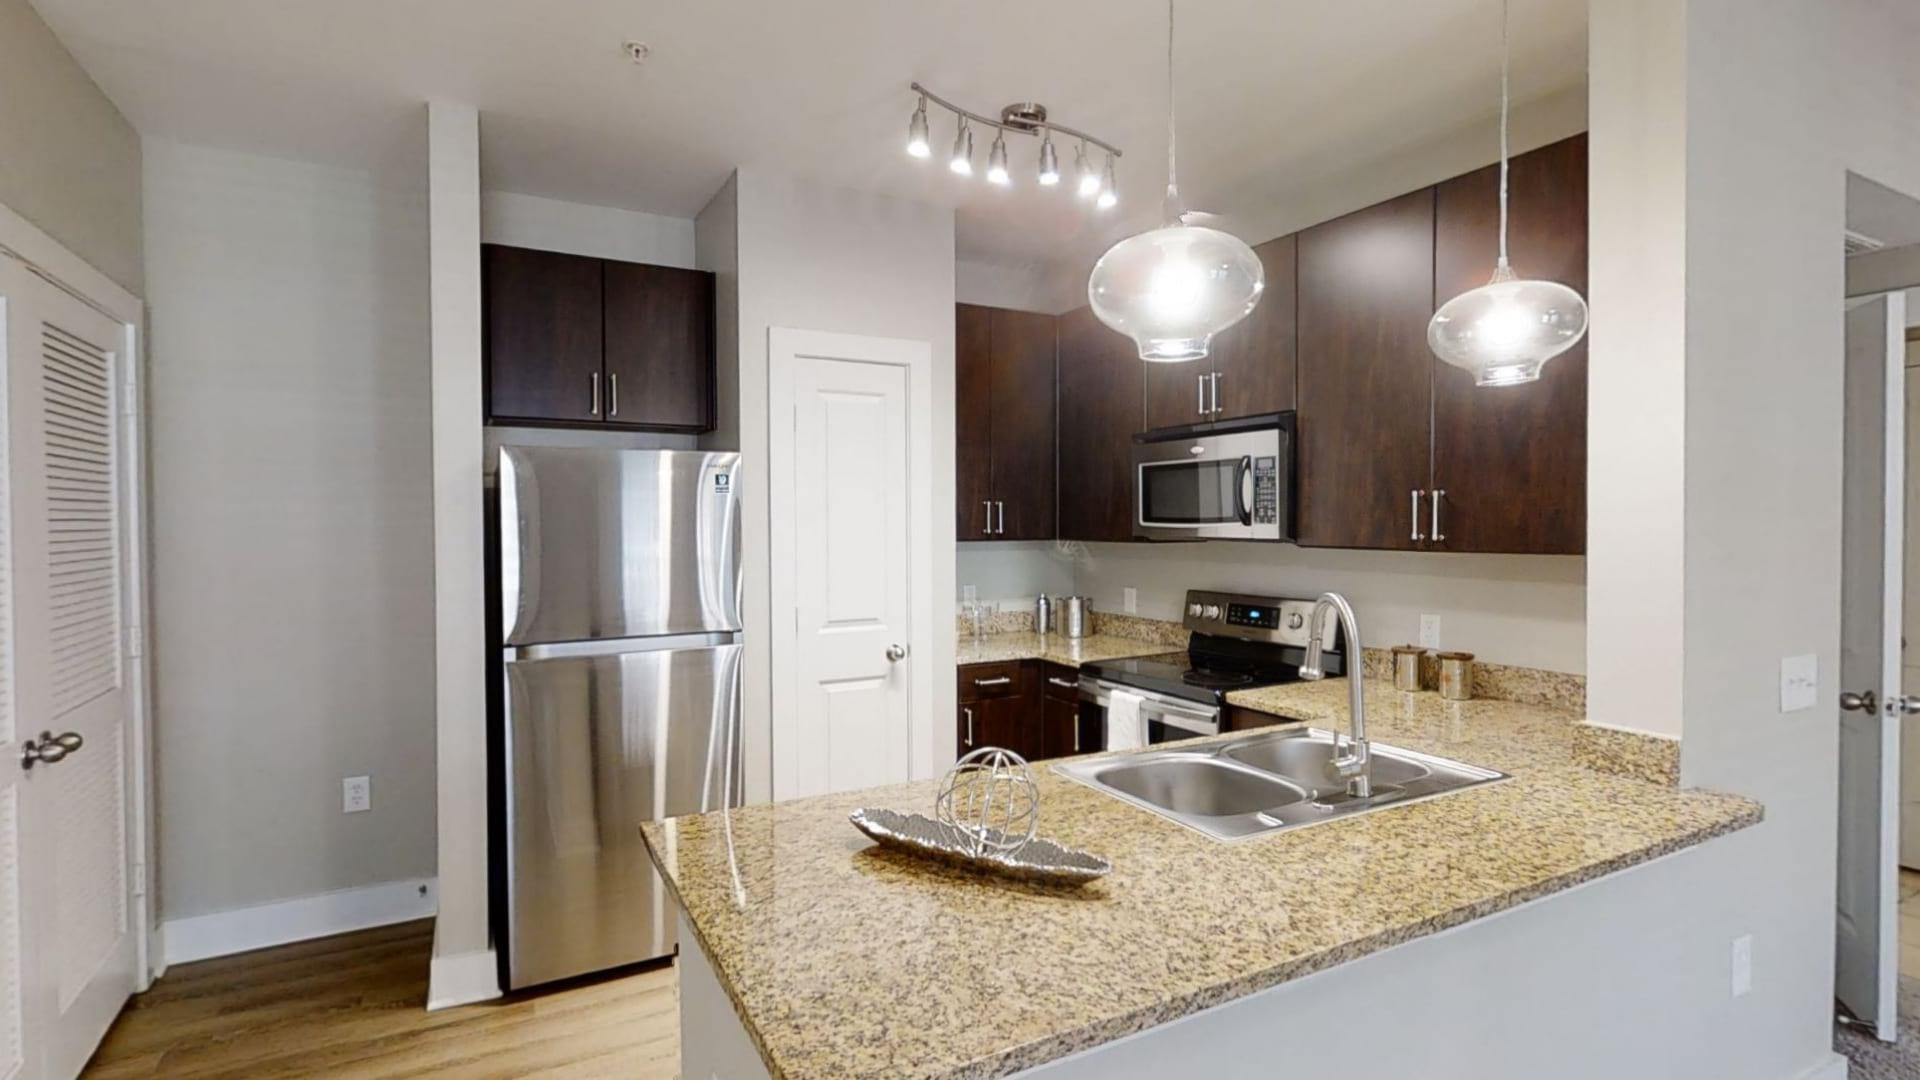 1, 2, and 3 Bedrooms Apartments in League City, TX